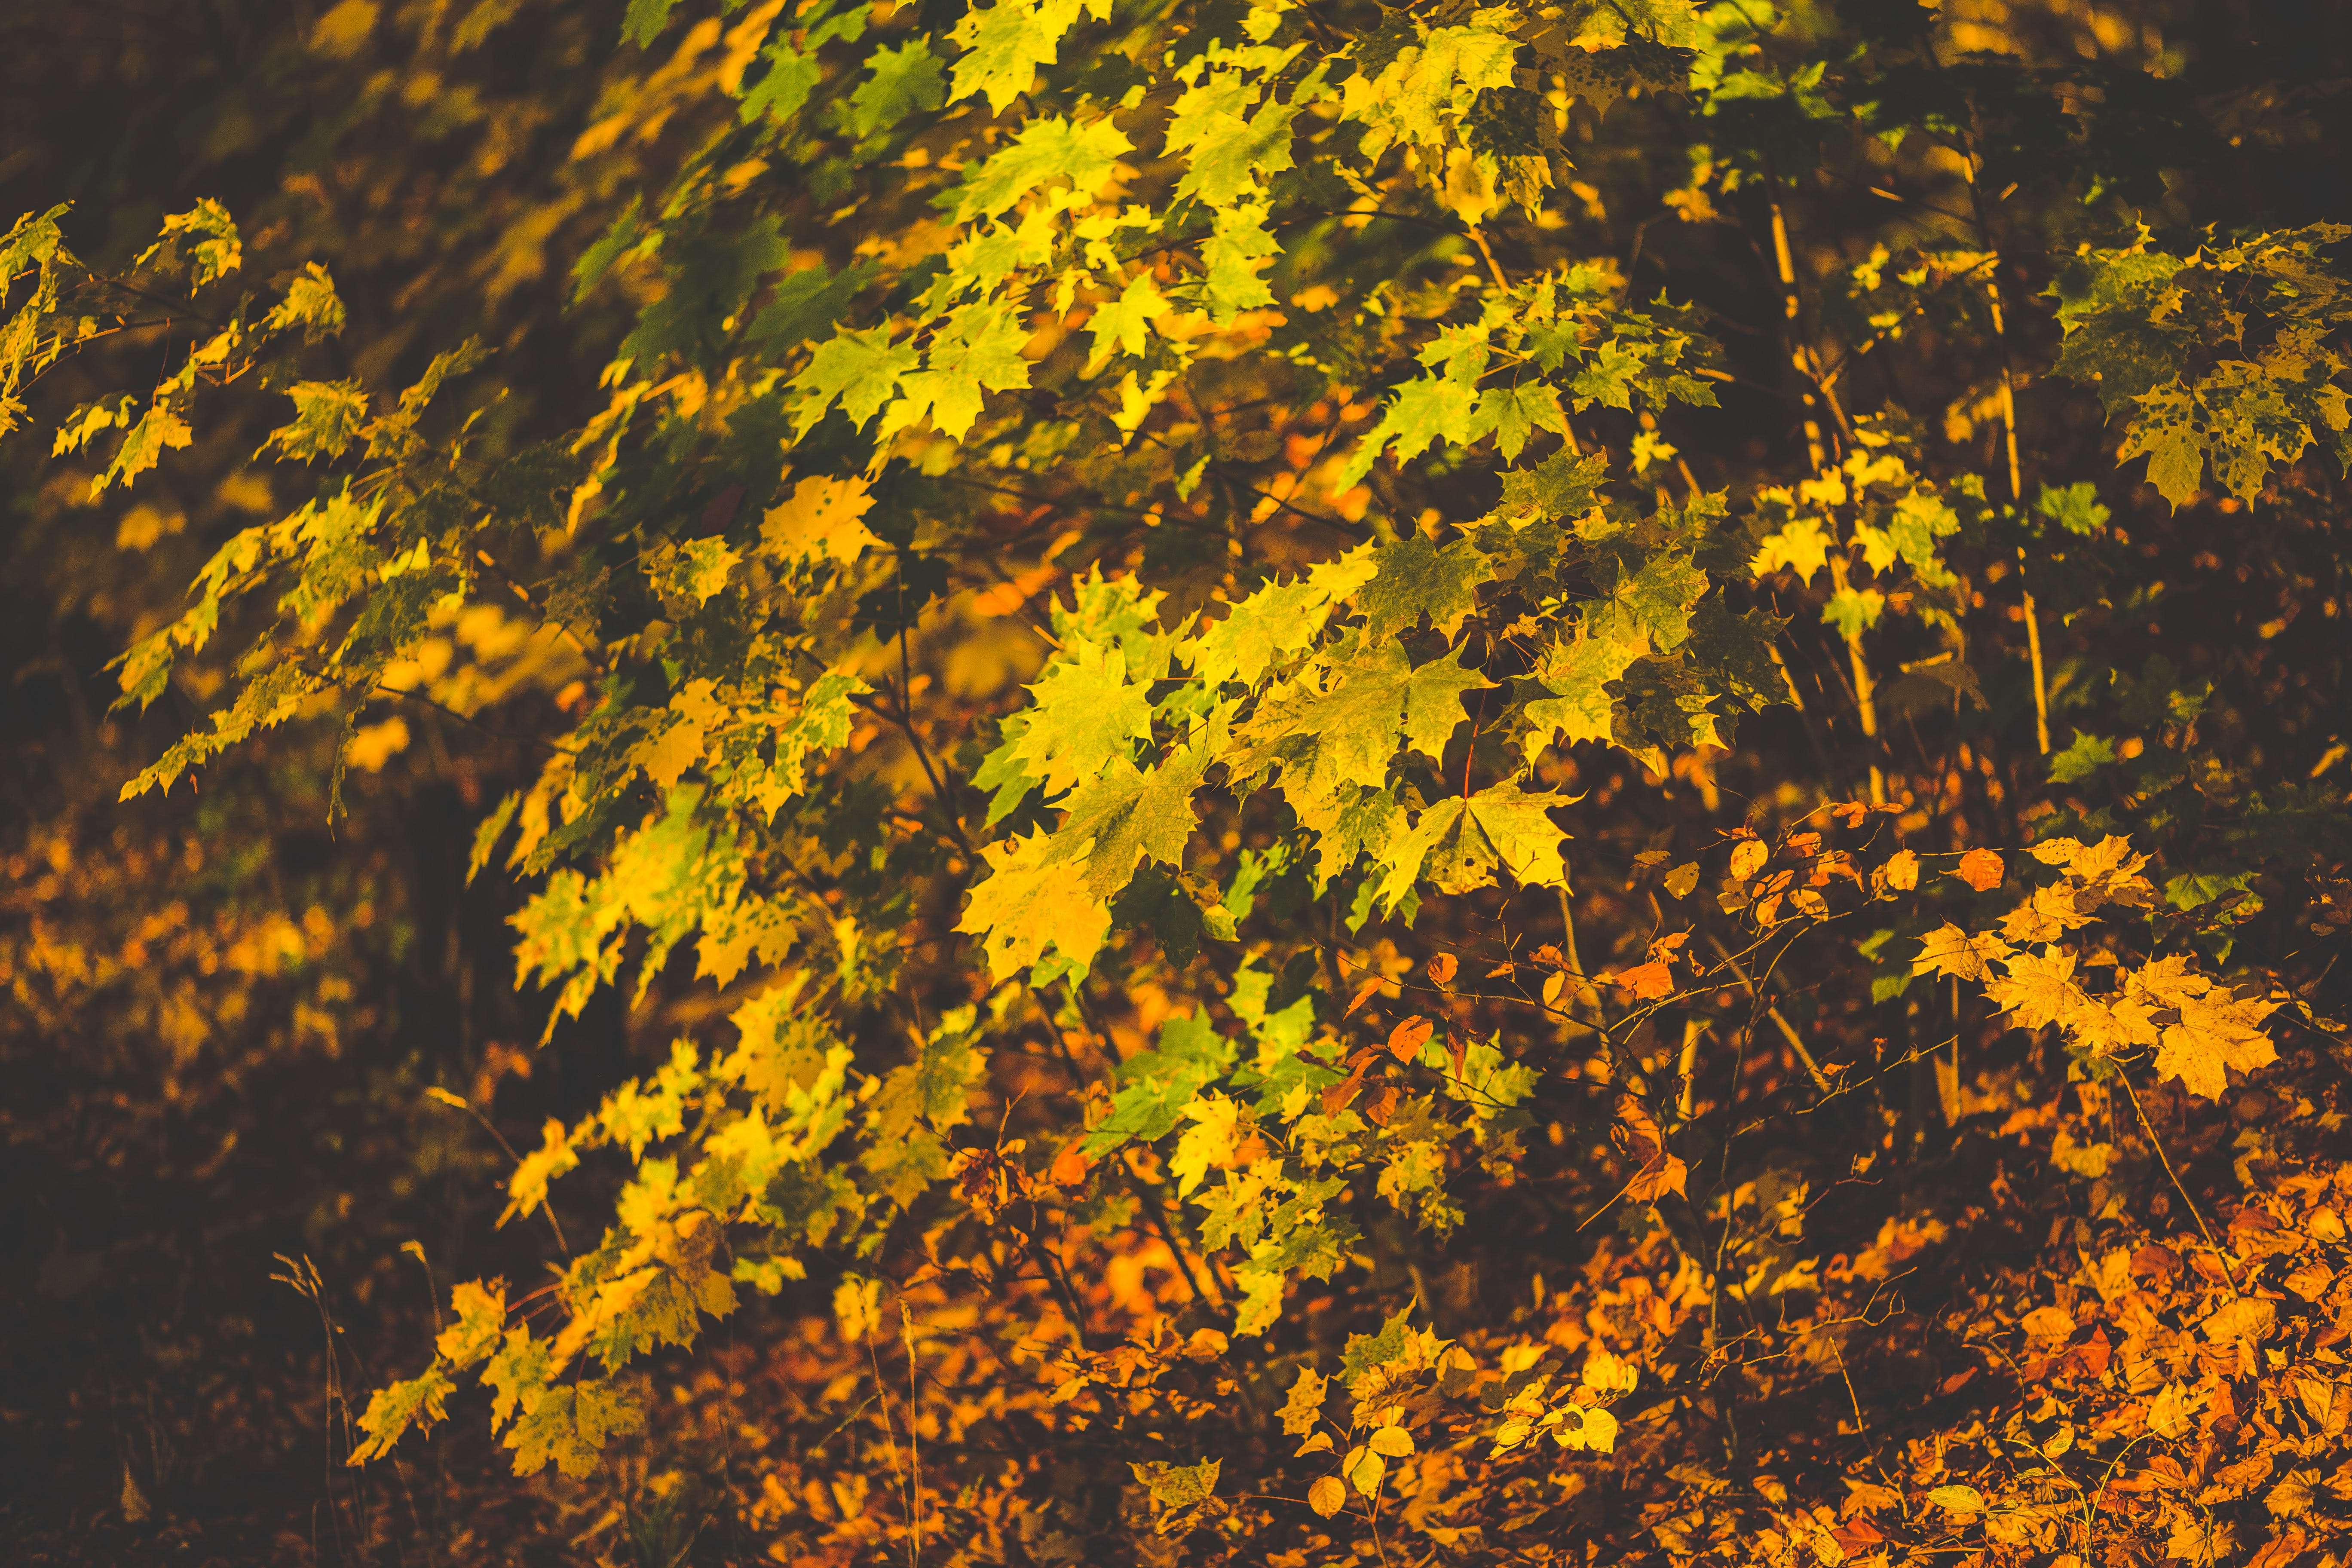 Free stock photo of leaves